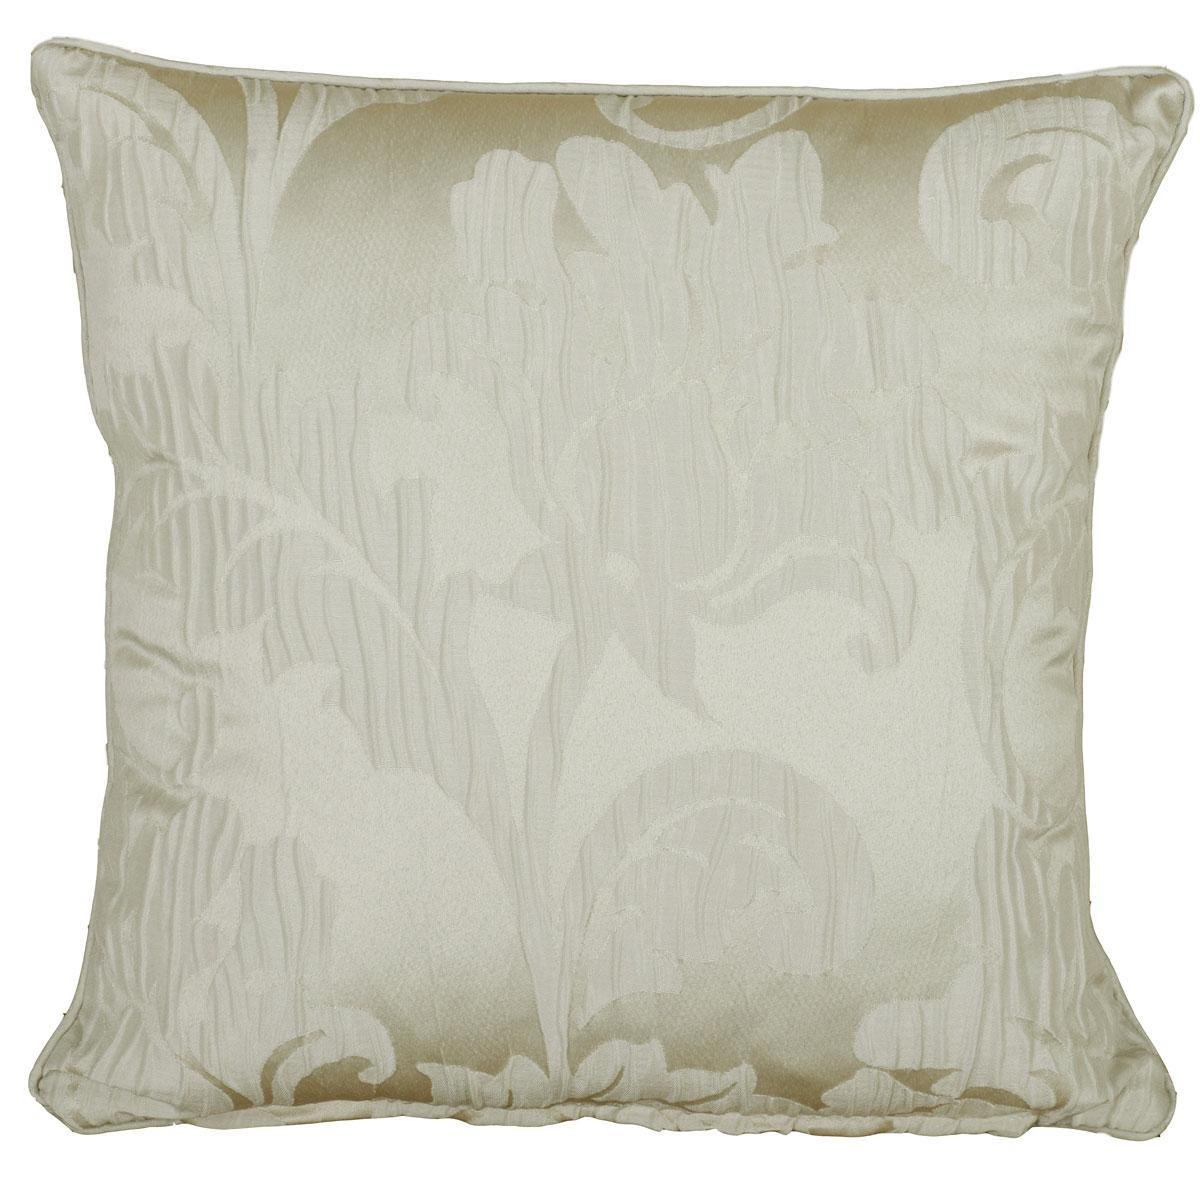 J Rosenthal Cushions And Throws  Baroque Square Cushion Filled Natural